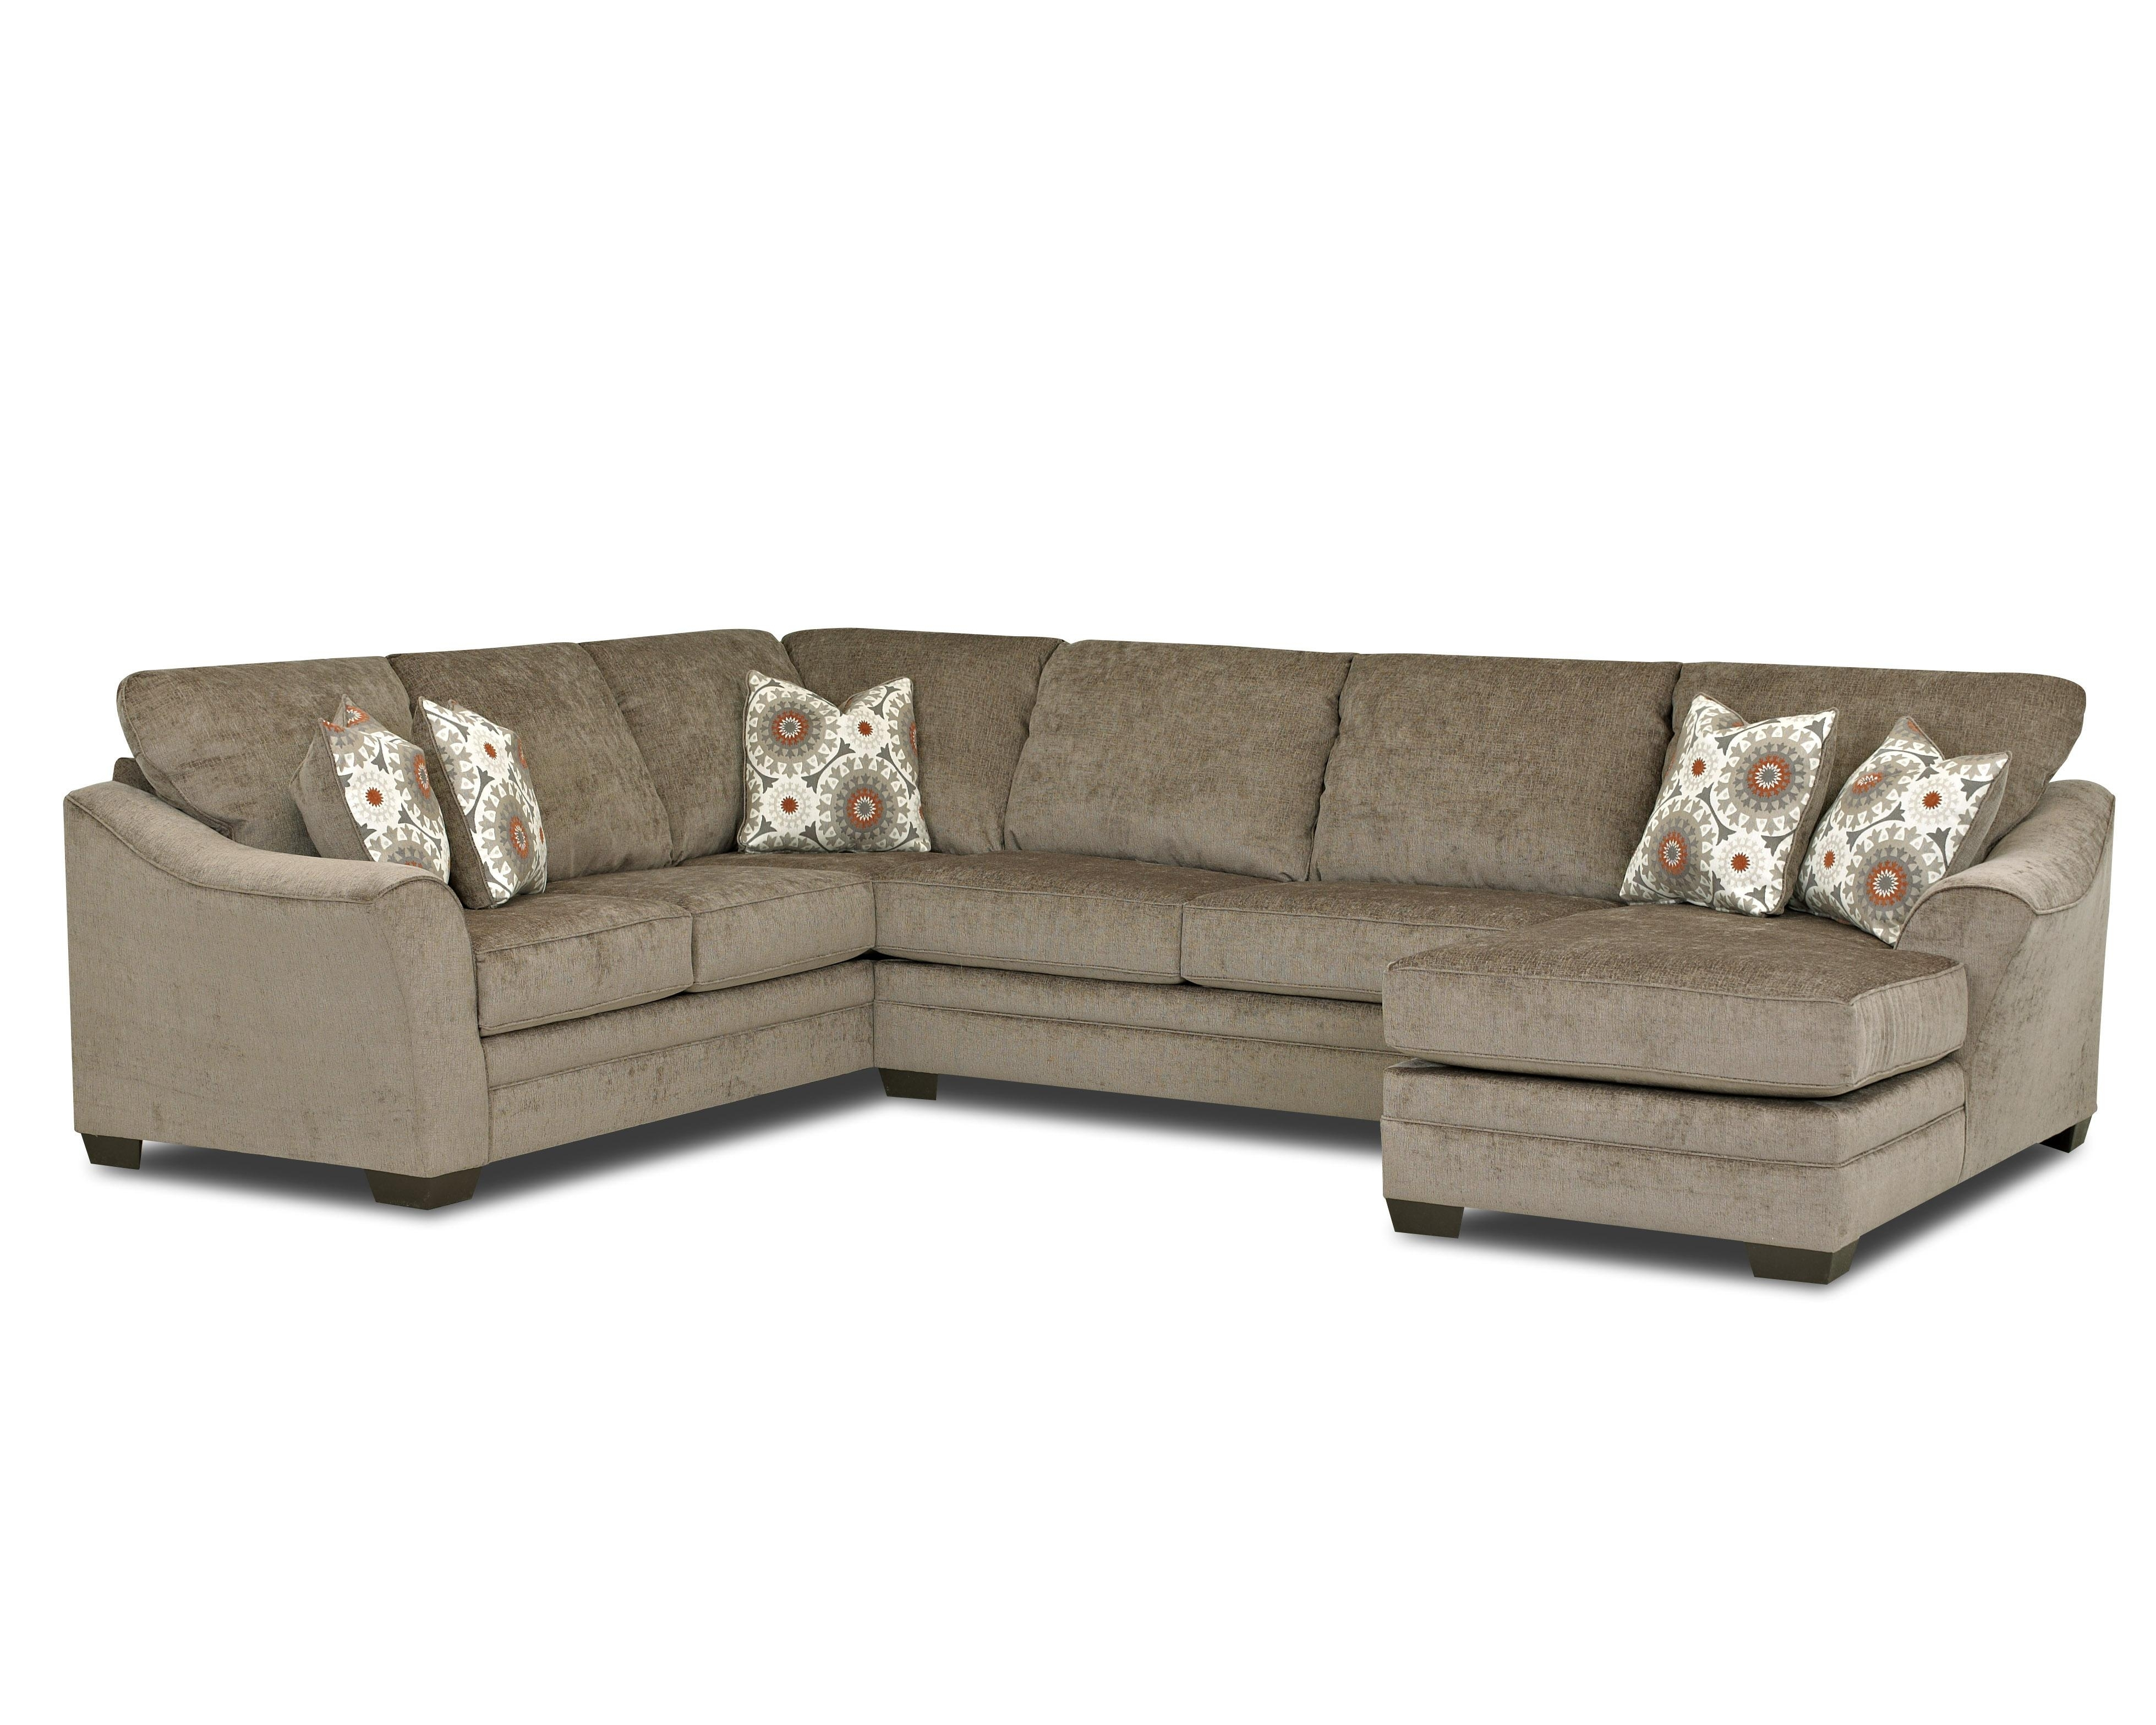 Klaussner Heston Contemporary Sectional Sofa With Flared, Sloped With Regard To Johnny Janosik Sectional Sofas (Image 7 of 10)